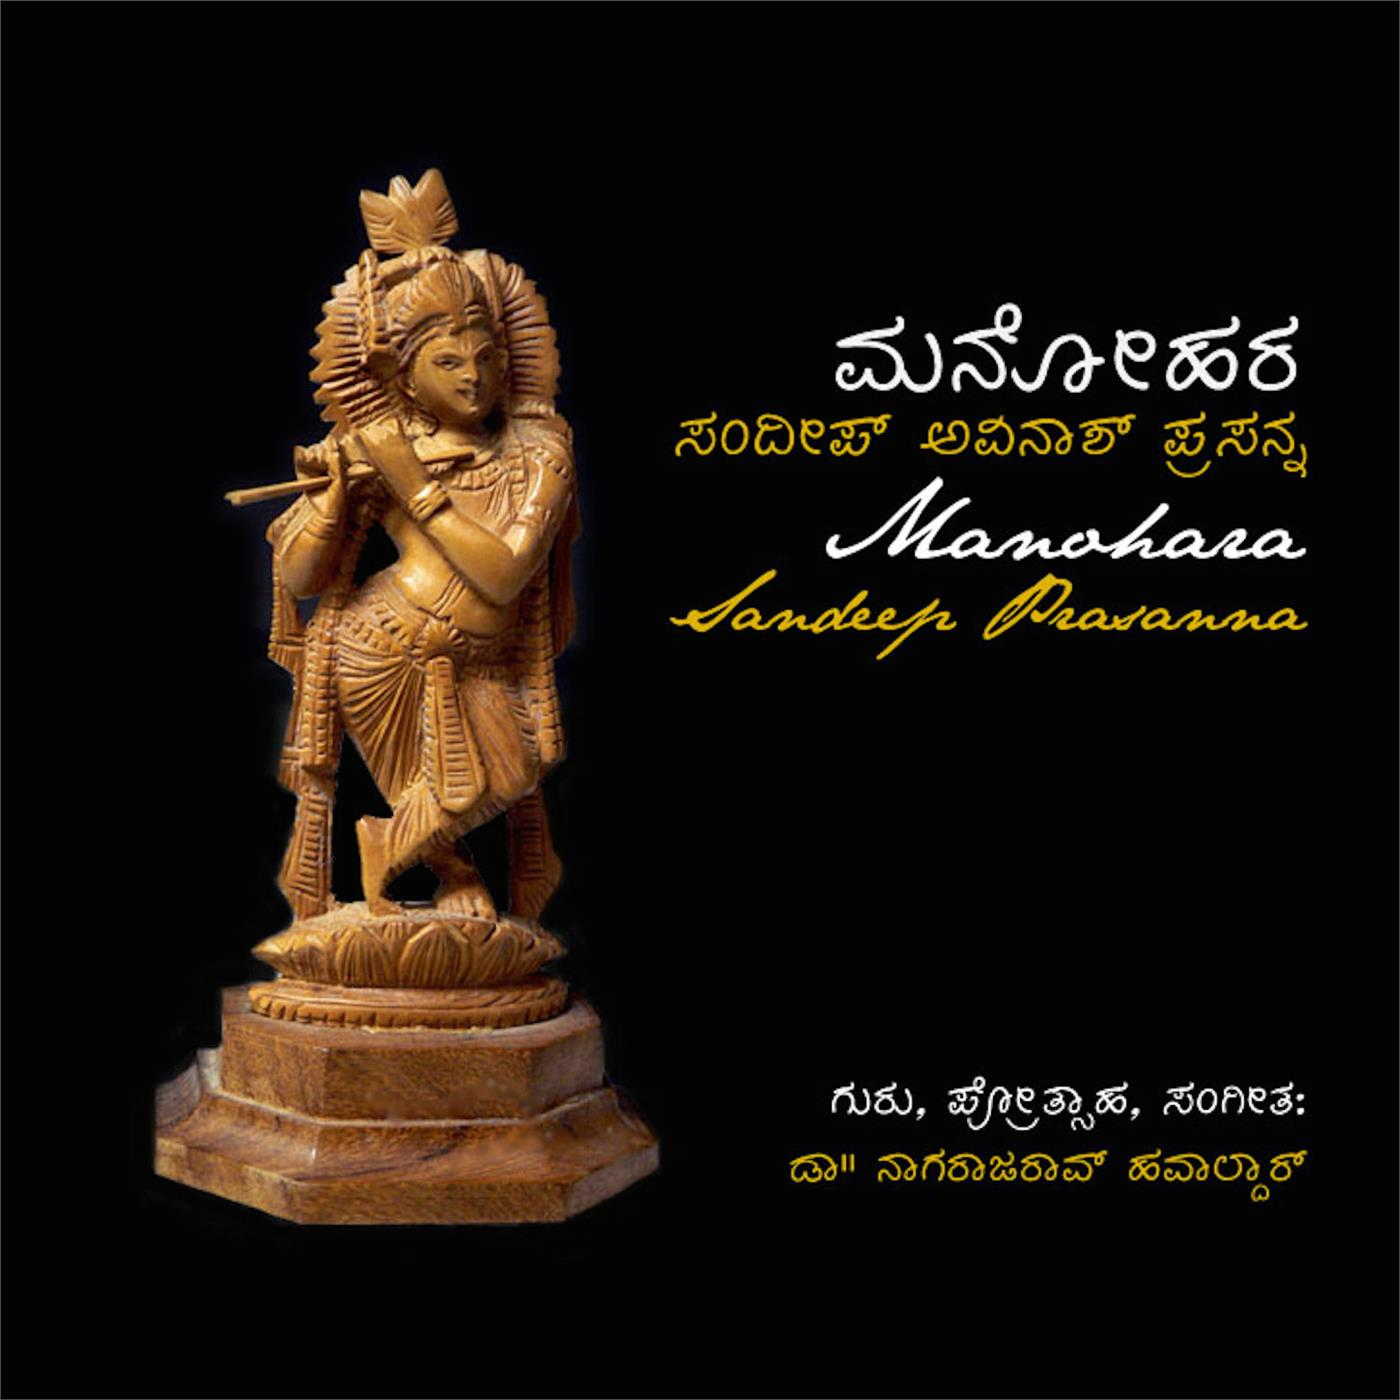 Manohara: Traditional Kannada Devotionals